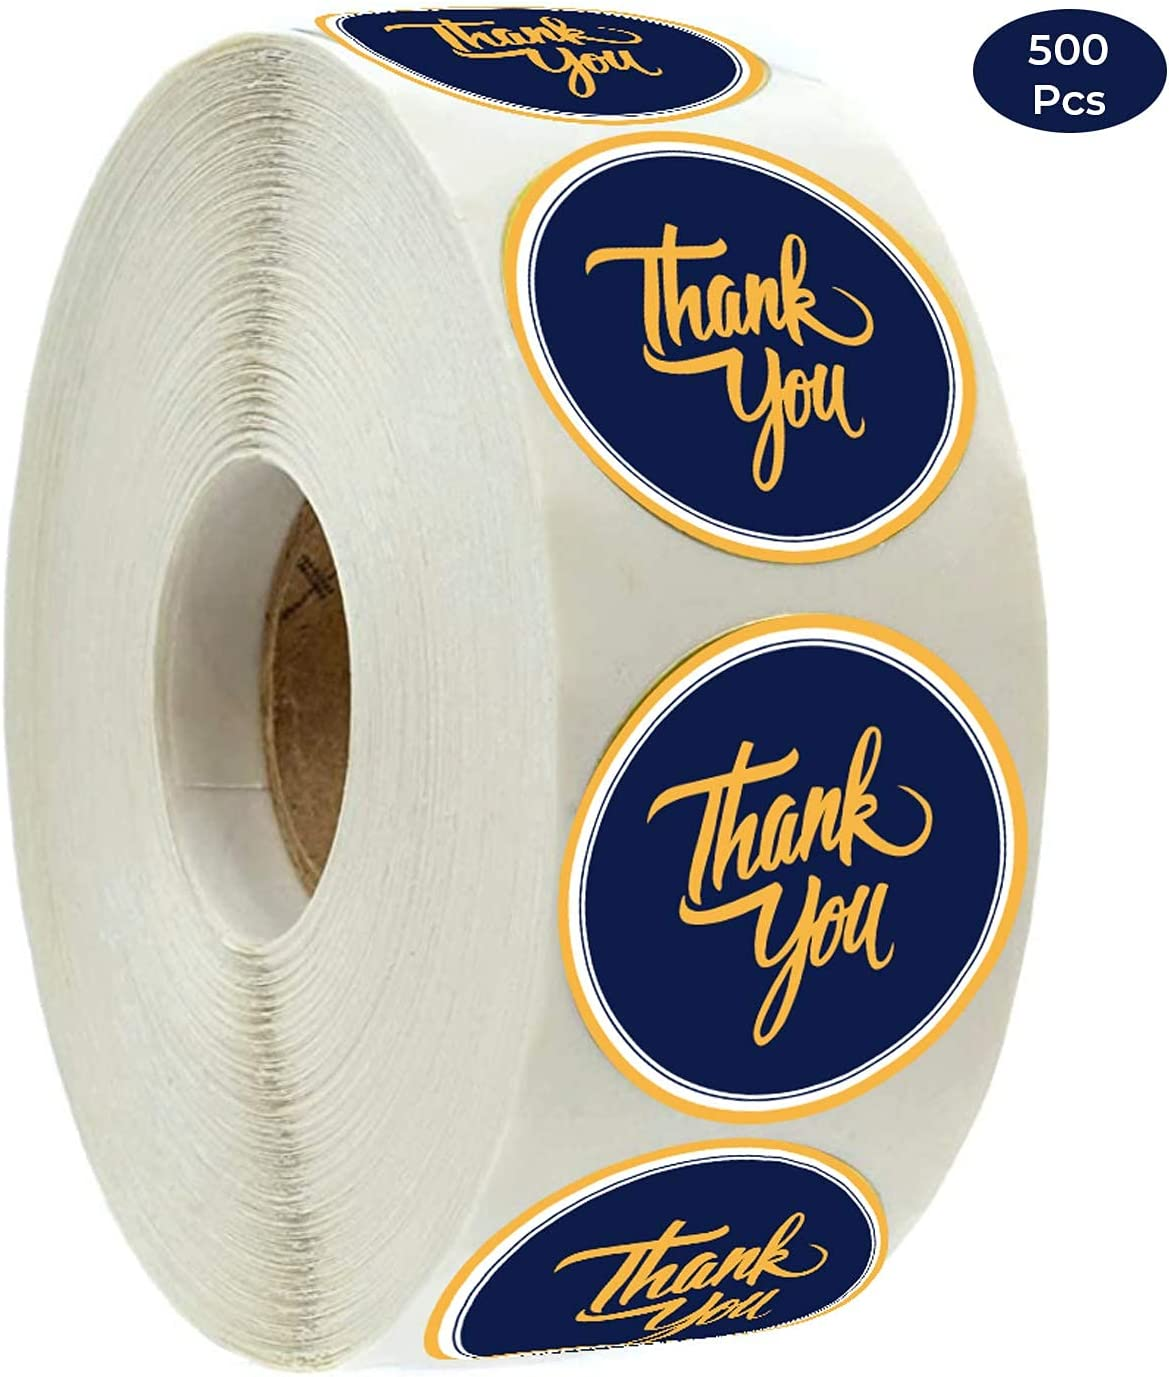 Thank You Stickers Roll | 500 Count | 1.5 Inch | Adhesive Stickers | Shipping Bags, Packaging, Labels, Round, Envelopes, Boutique, Mail, Stamp | Small Business Supplies | Blue-Gold